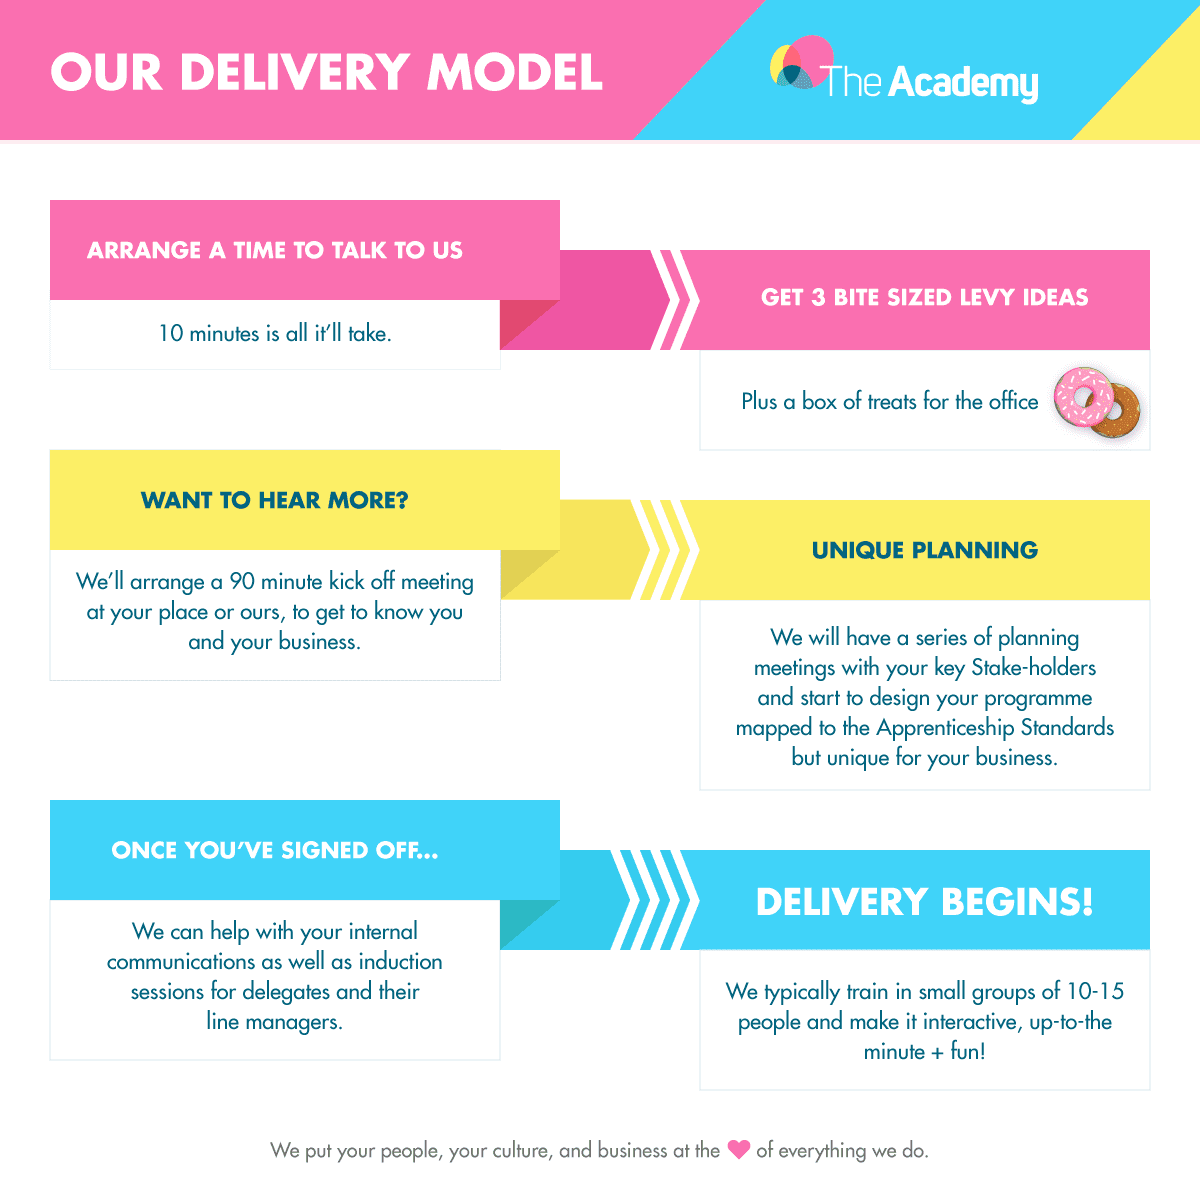 Delivery model infographic